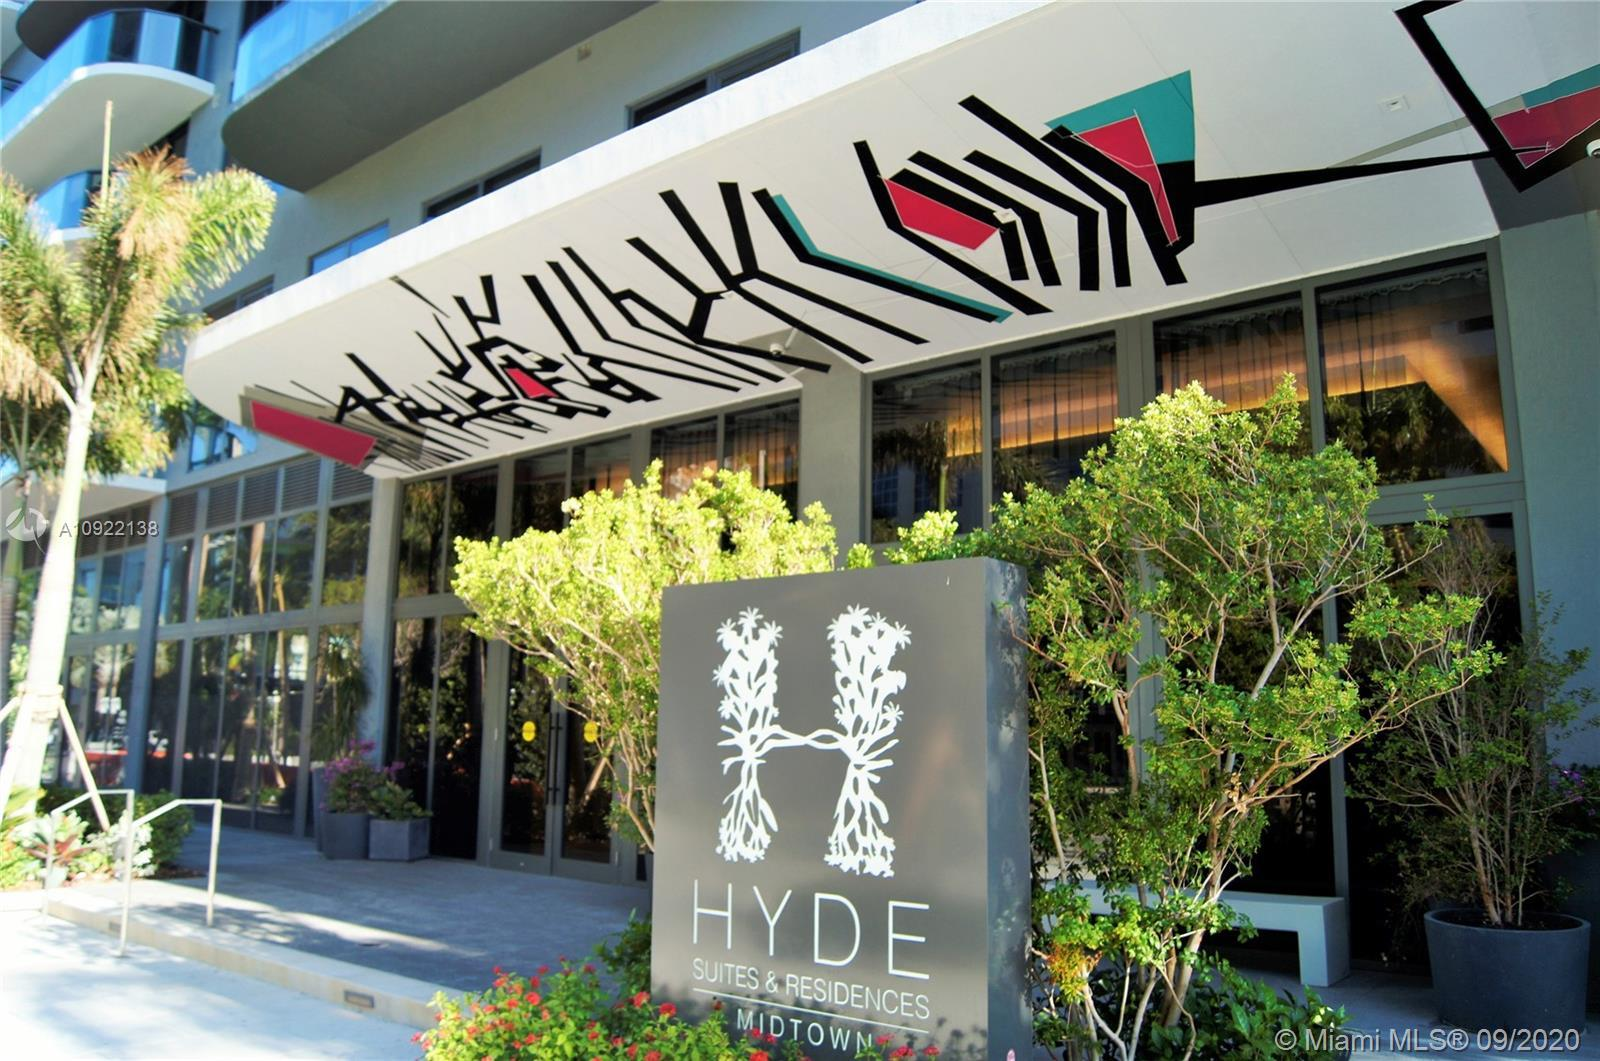 Hyde Midtown Residences and Hotel: Fully Furnished and turnkey New 1BR 1 & 1/2 Bath condo overlookin